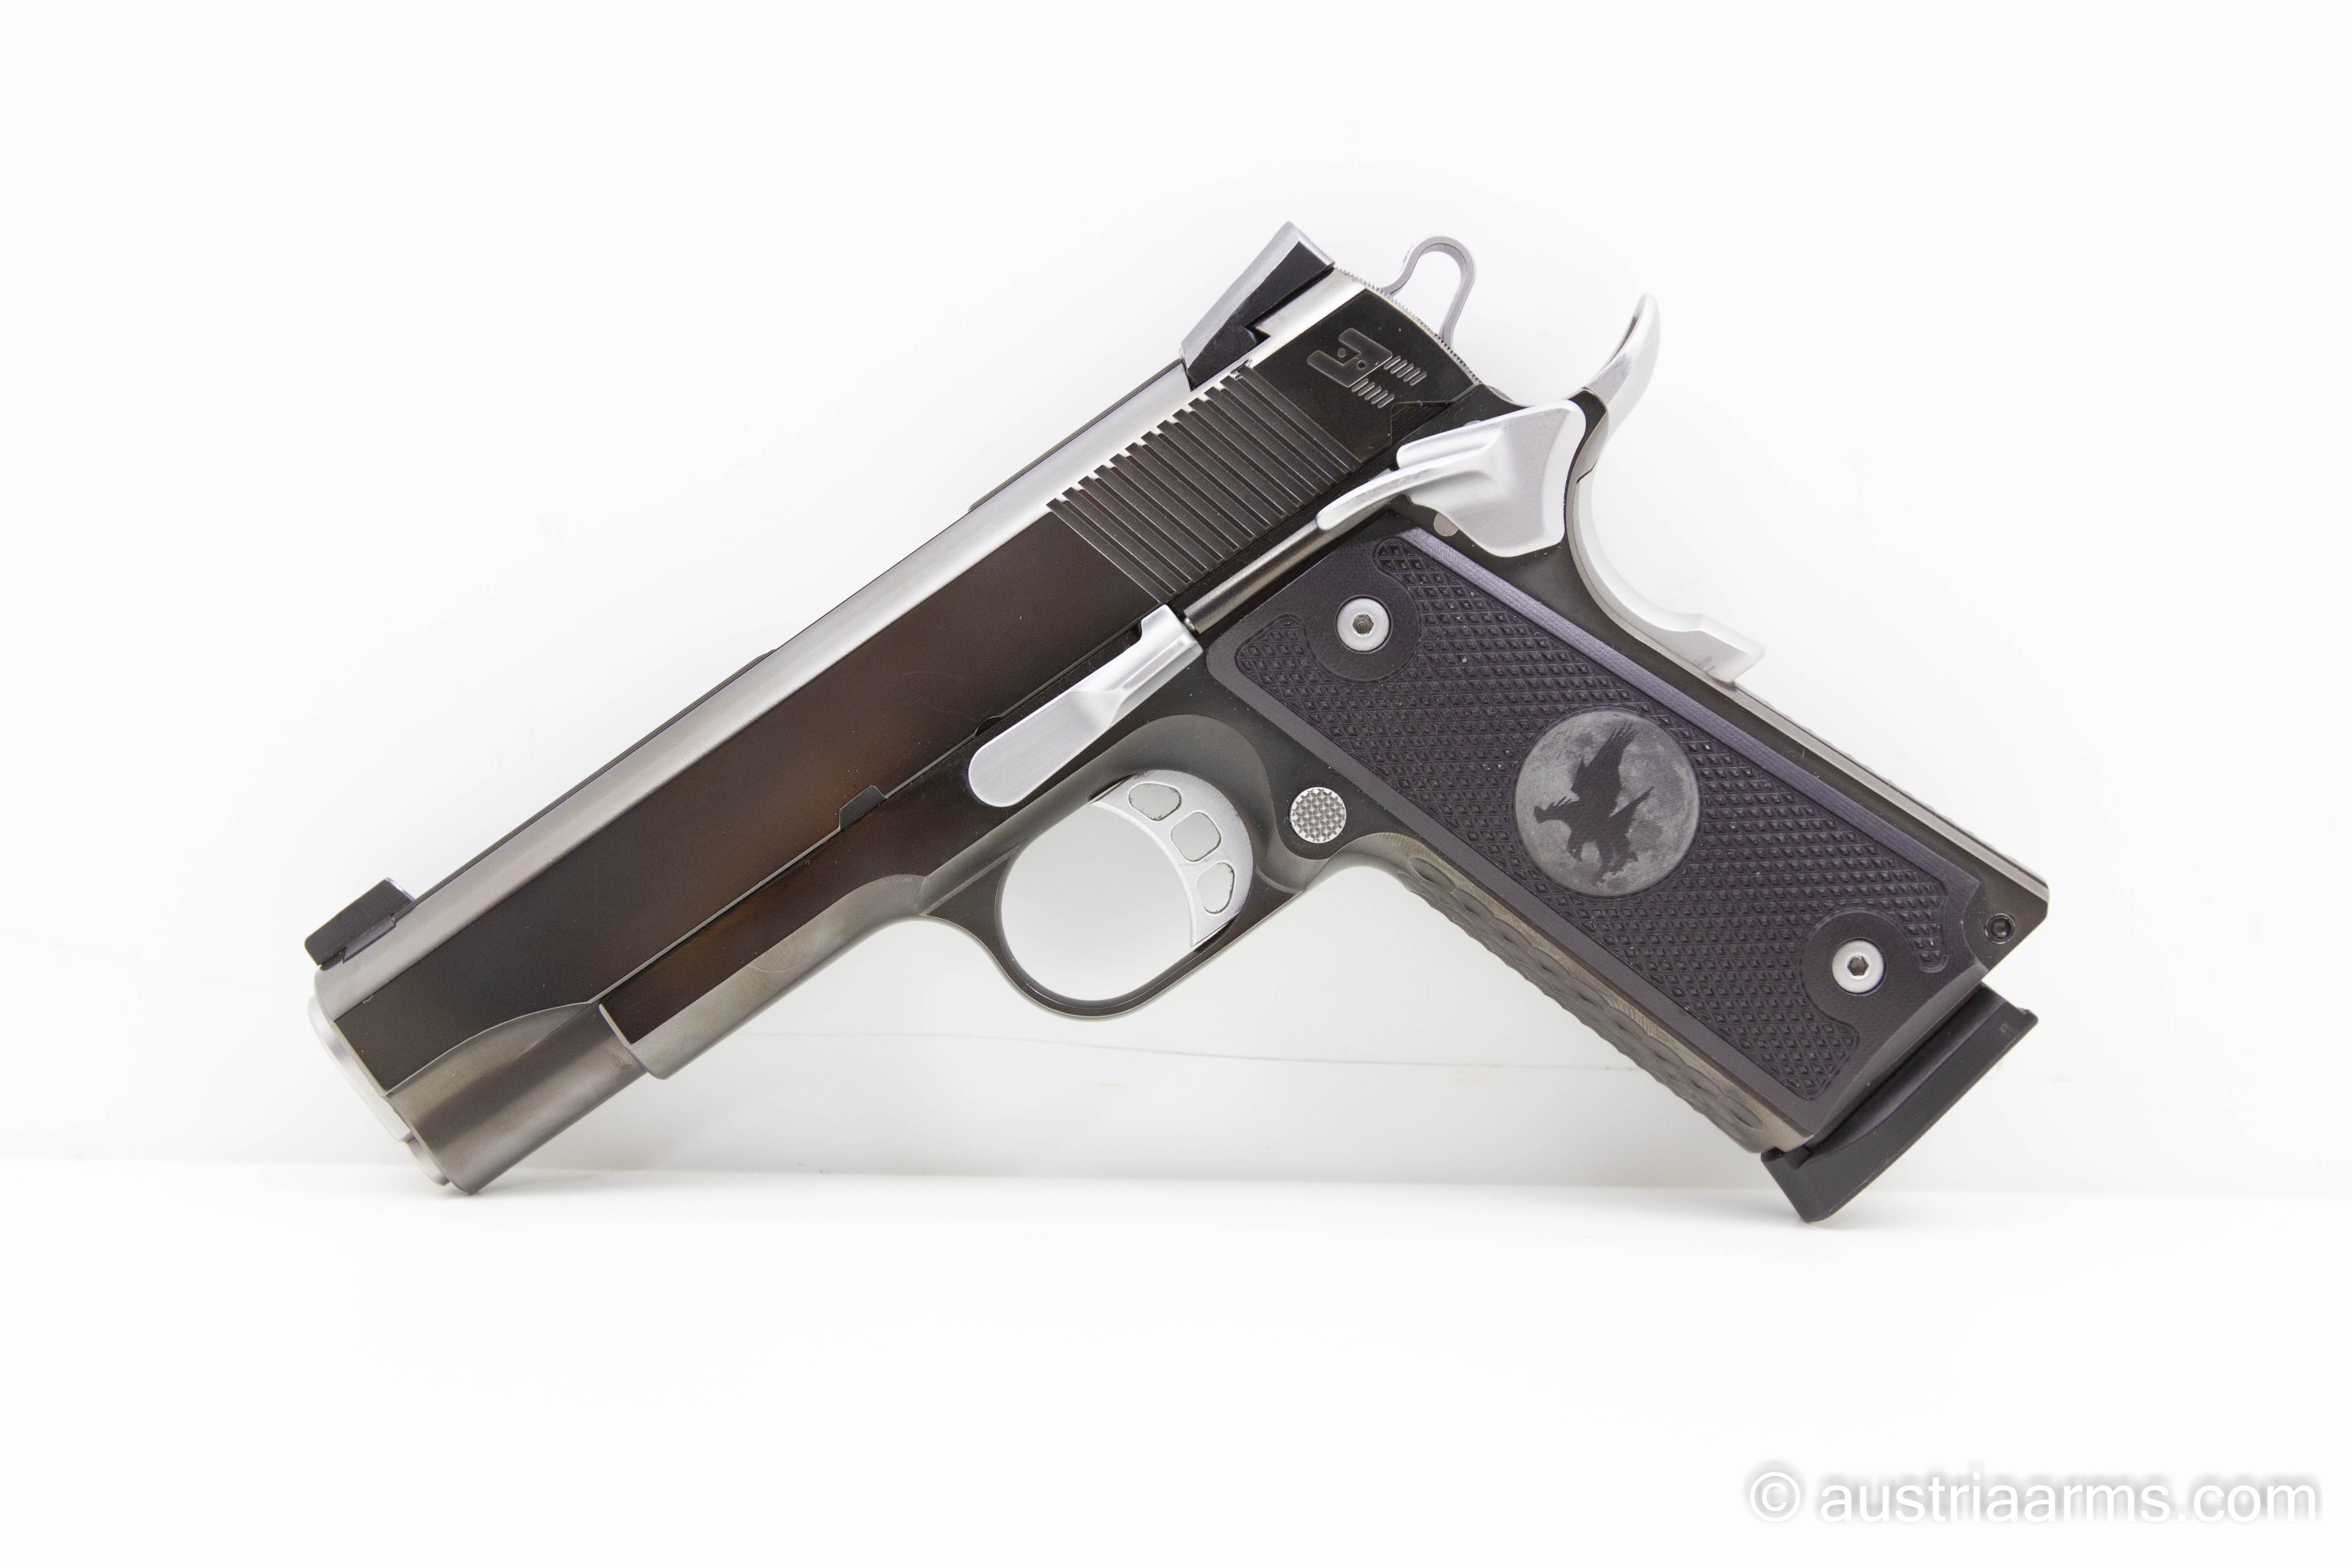 Night Hawk Heinie Custom Commander, 9 x 19 mm - Image 1